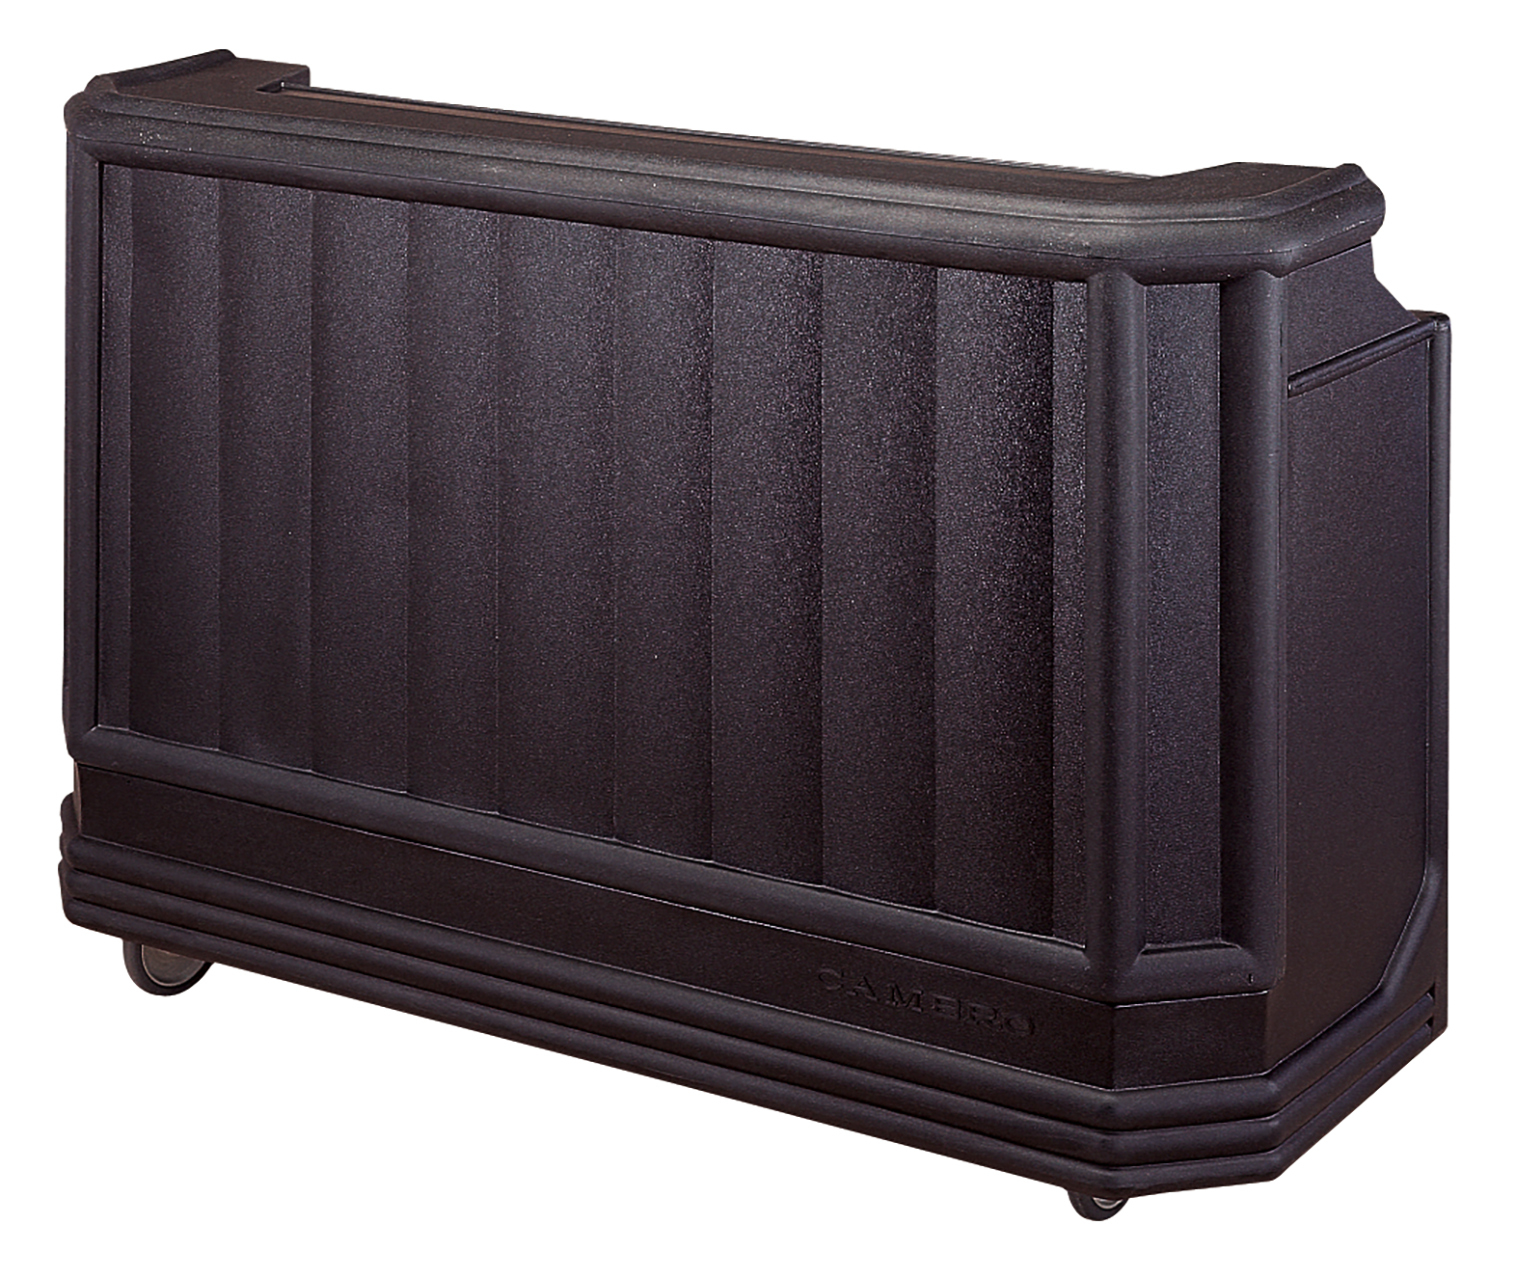 Cambro BAR730PMT220110 portable bar